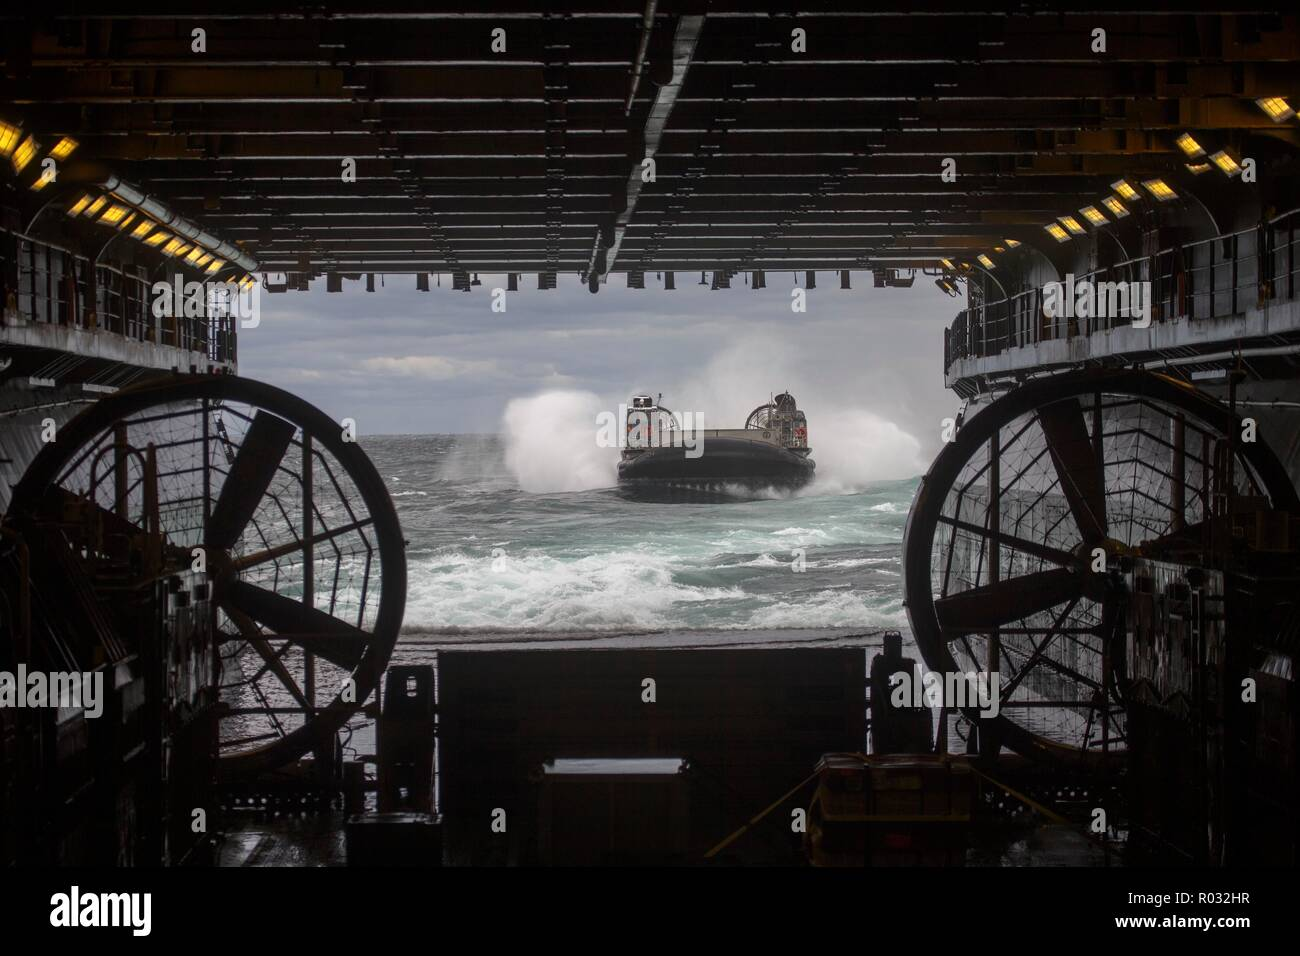 A landing craft, air cushion makes its approach toward the well deck of the USS Kearsarge (LHD 3) during Carrier Strike Group 4 Composite Unit Training Exercise Oct. 27, 2018. COMPTUEX is the final pre-deployment exercise that certifies the combined Kearsarge Amphibious Ready Group and 22nd Marine Expeditionary Unit's abilities to conduct military operations at sea. (U.S. Marine Corps photo by Lance Cpl. Tawanya Norwood) Stock Photo